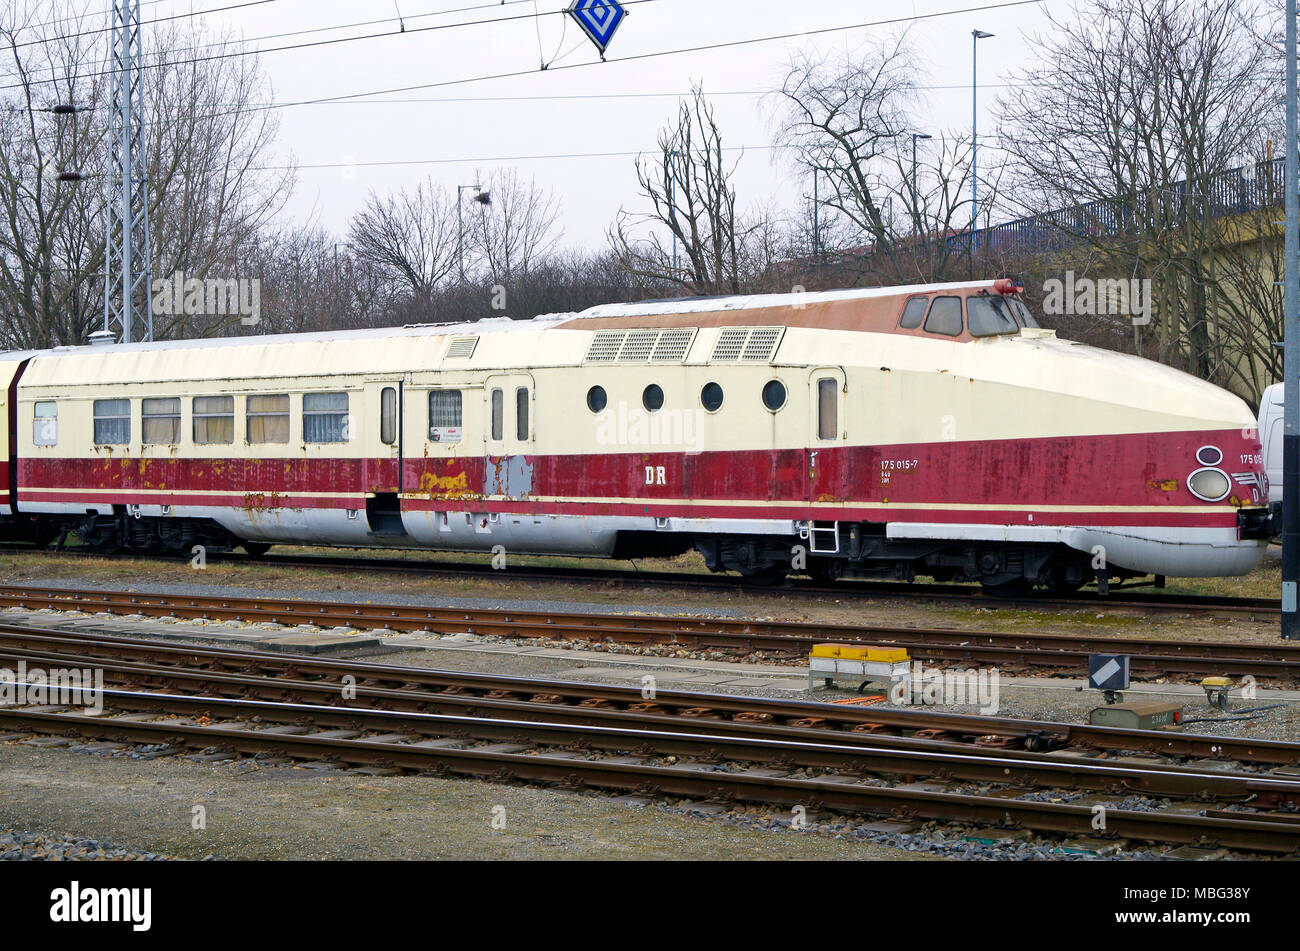 Deutsches Reichsbahn train no 175 015-7 a four carriage train with cabs and engines at both ends, in the process of being restored. - Stock Image